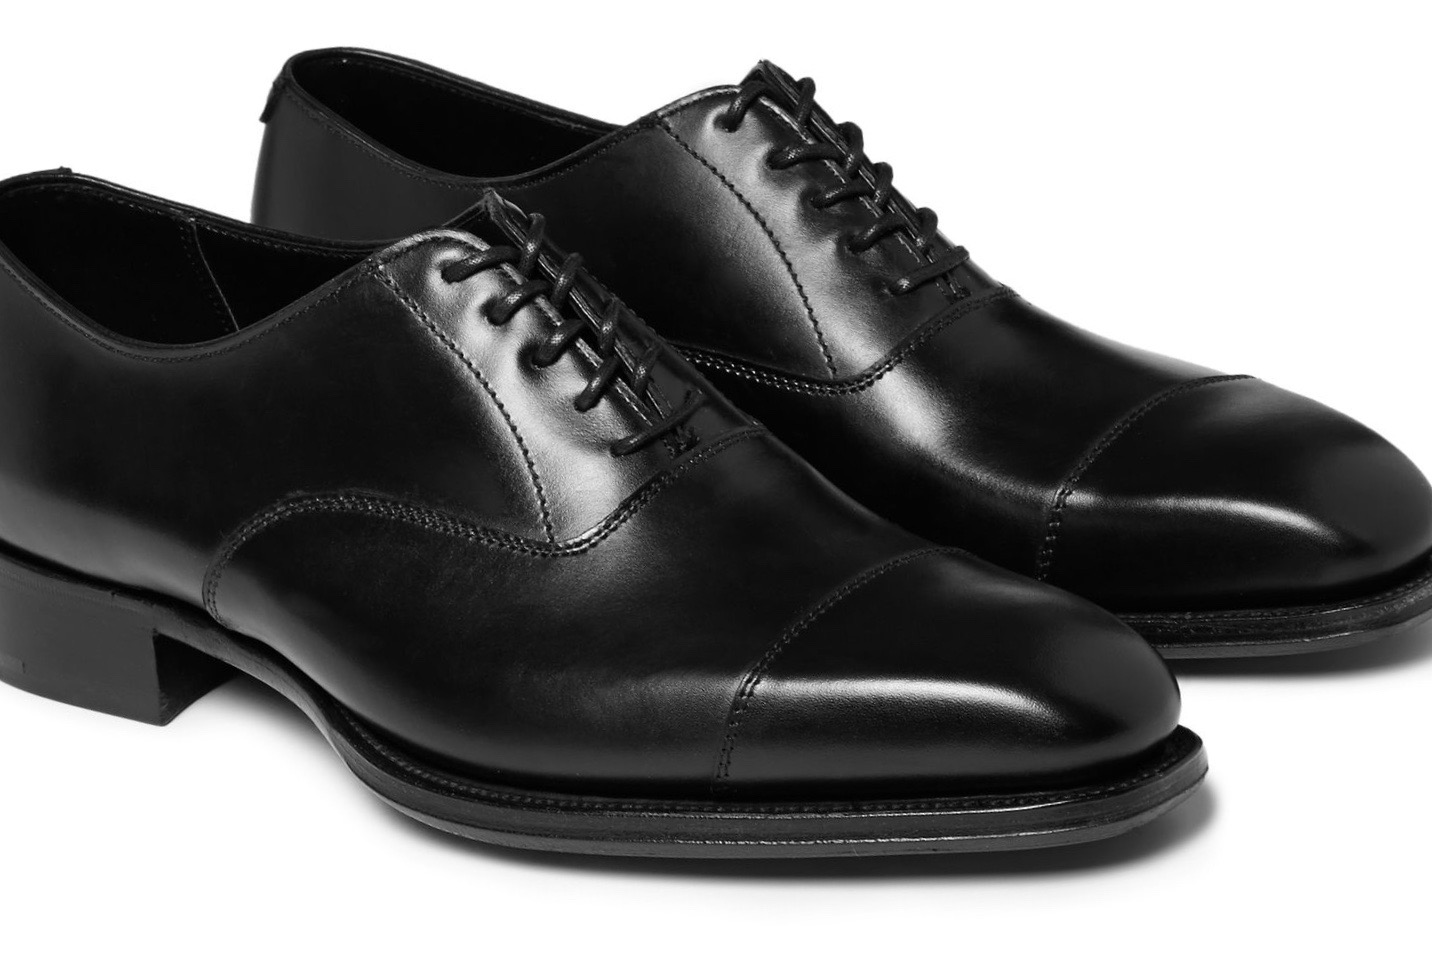 The Old Black Shoes